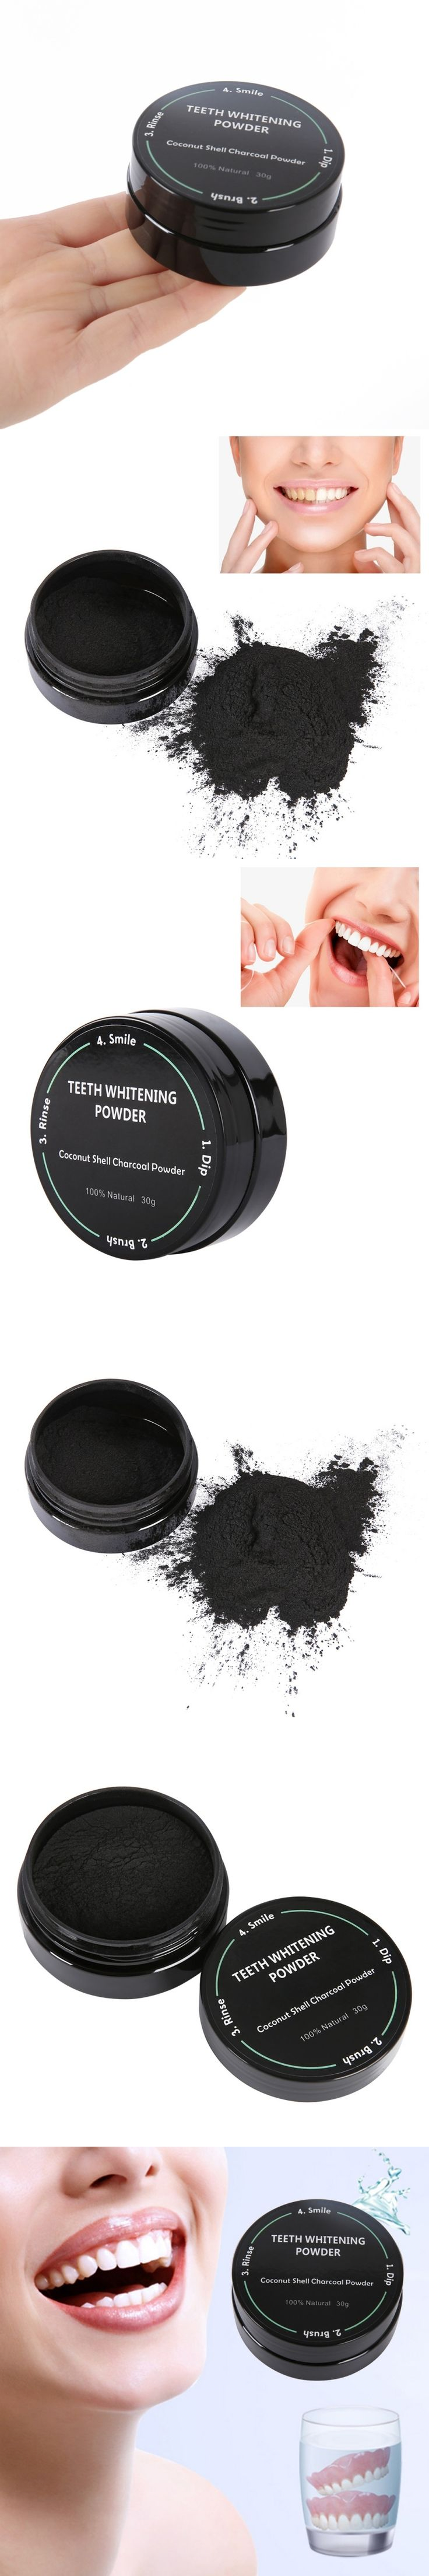 2017 Coconut Shells Activated Carbon Teeth Whitening Organic Natural Bamboo Charcoal Toothpaste Powder Wash Your Teeth White PL2